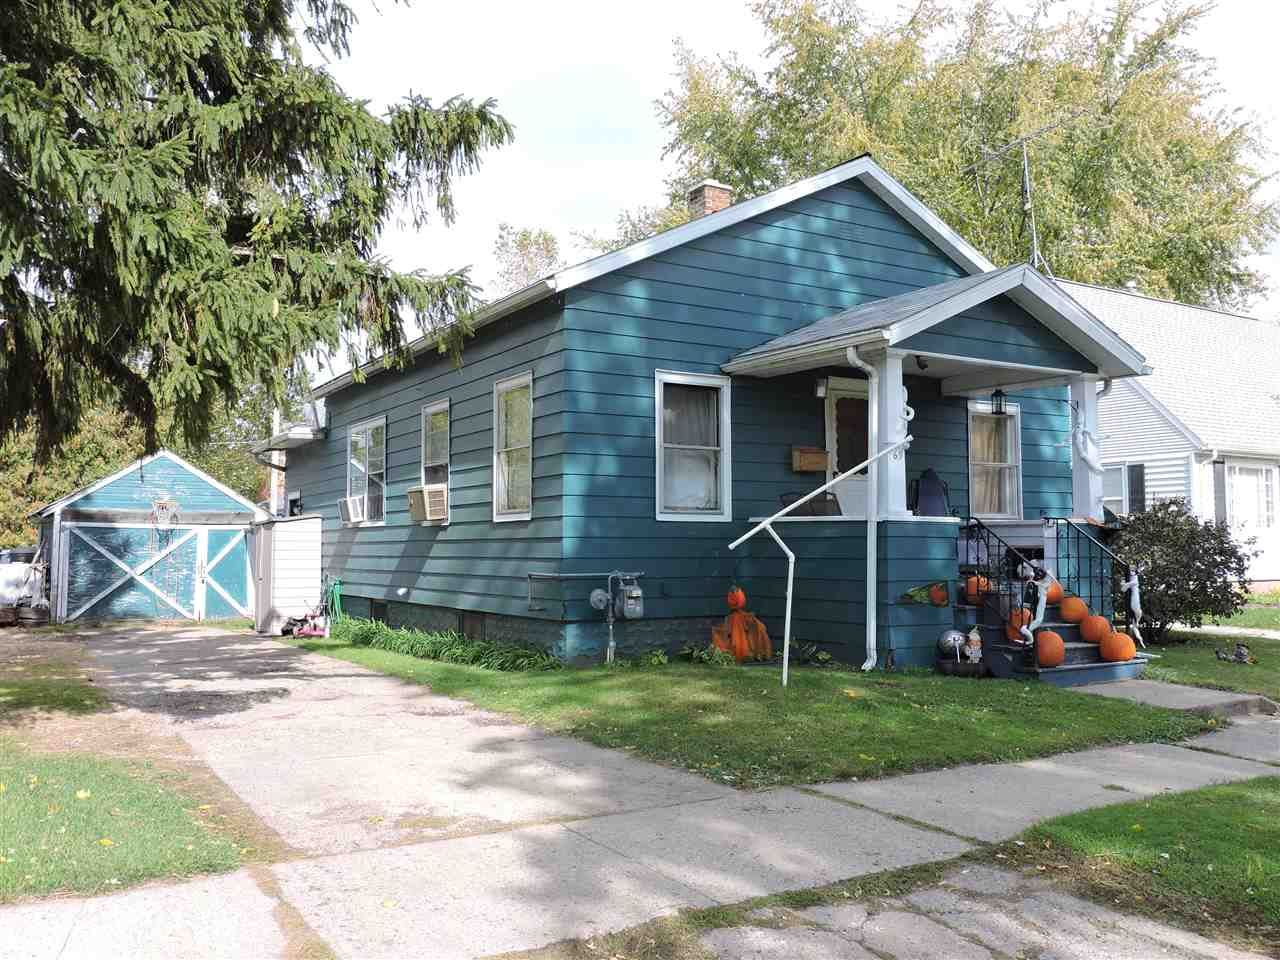 69 W BANK Street, Fond du Lac, WI 54935 - MLS#: 50230950